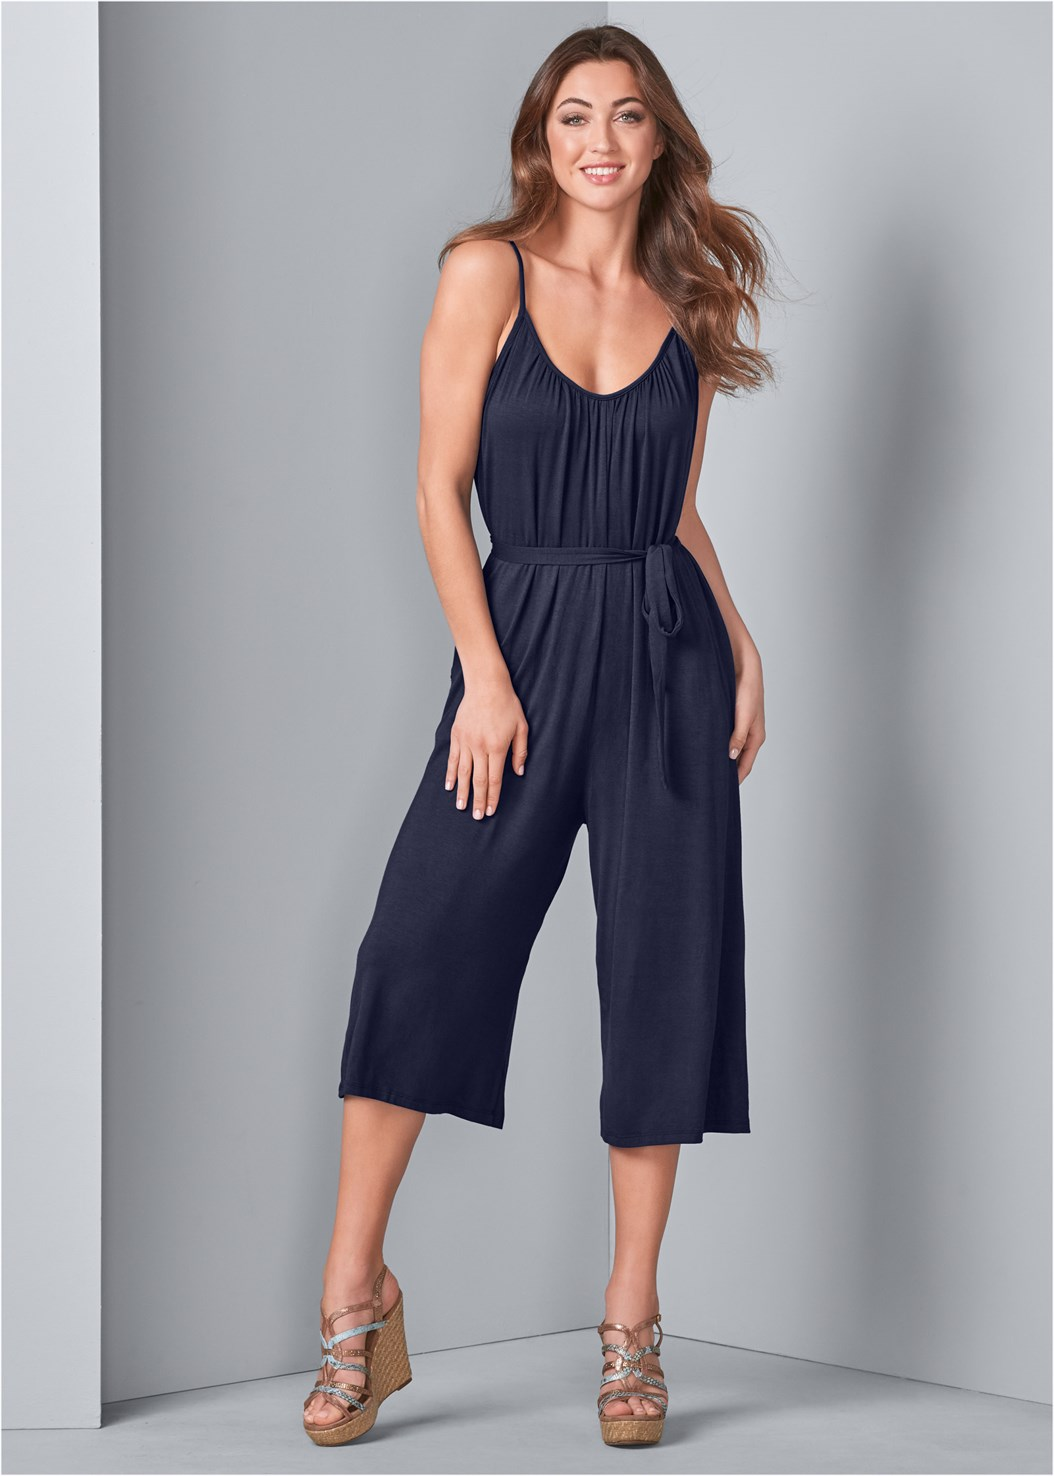 Casual Jumpsuit,Long Ribbed Duster,Beaded Heels,Embellished Slides,Ring Handle Circle Clutch